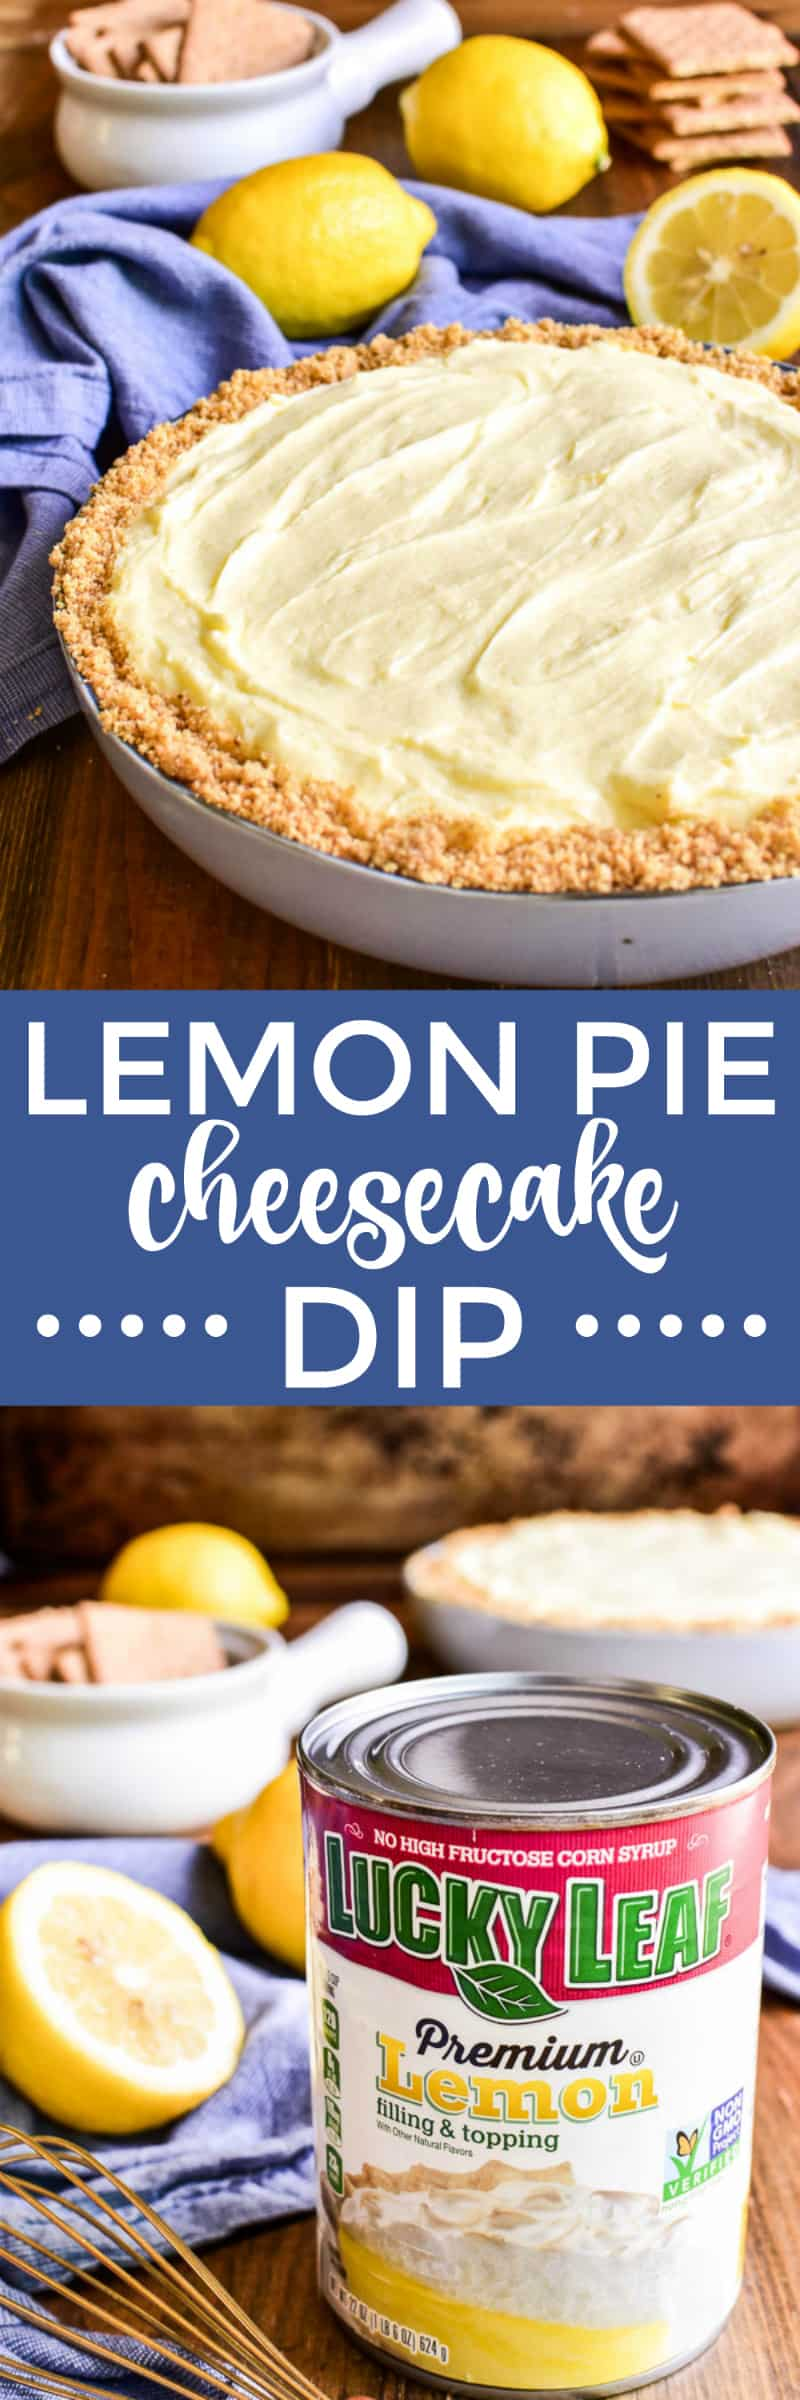 Collage image of Lemon Pie Cheesecake Dip and Lucky Leaf Lemon Filling & Topping